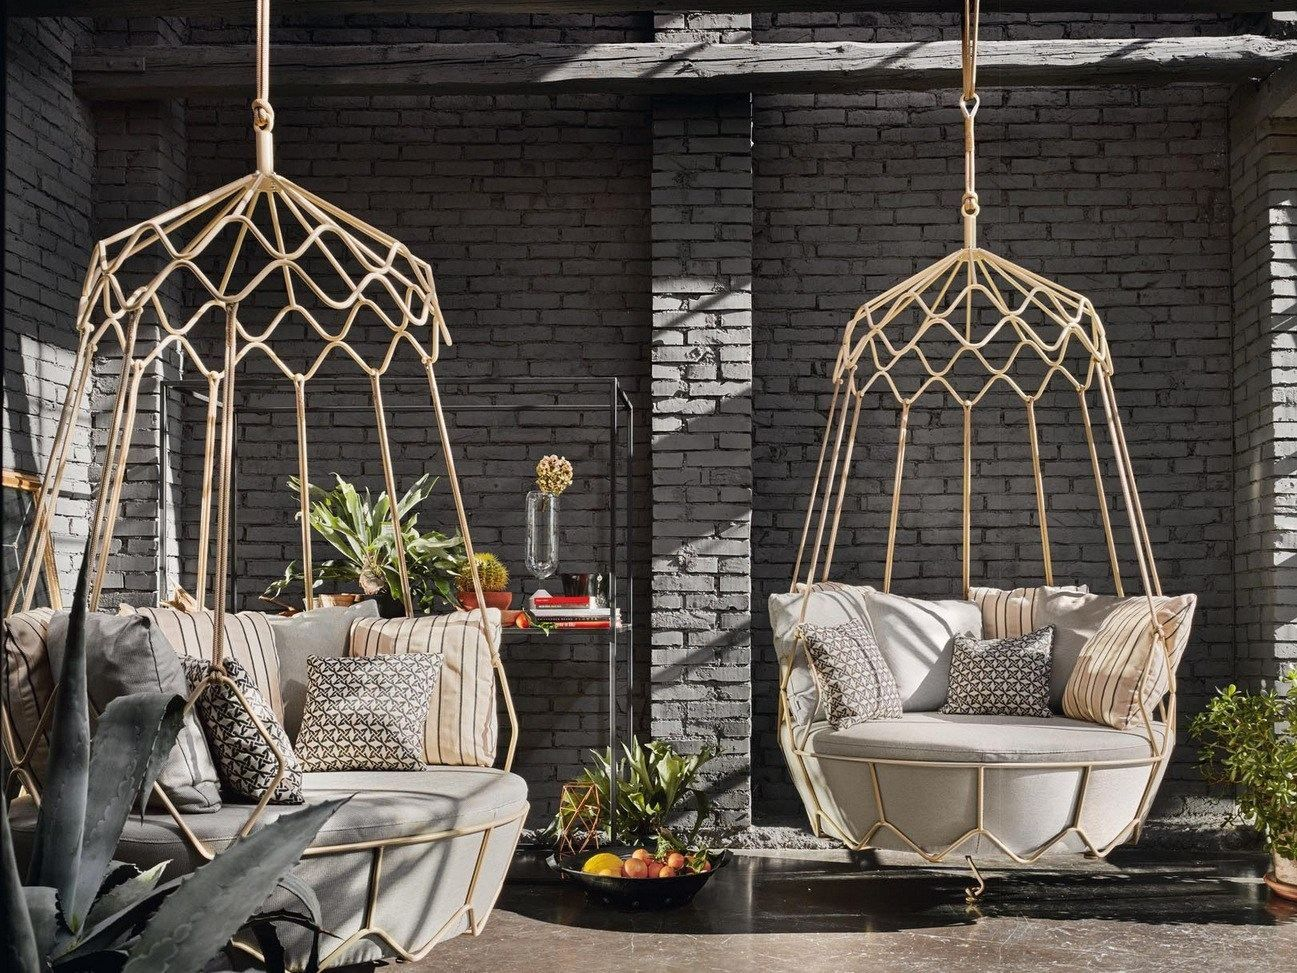 Garden Furniture From Roberti Rattan Hanging Garden Chair Rattan Garden Furniture Sunroom Seating